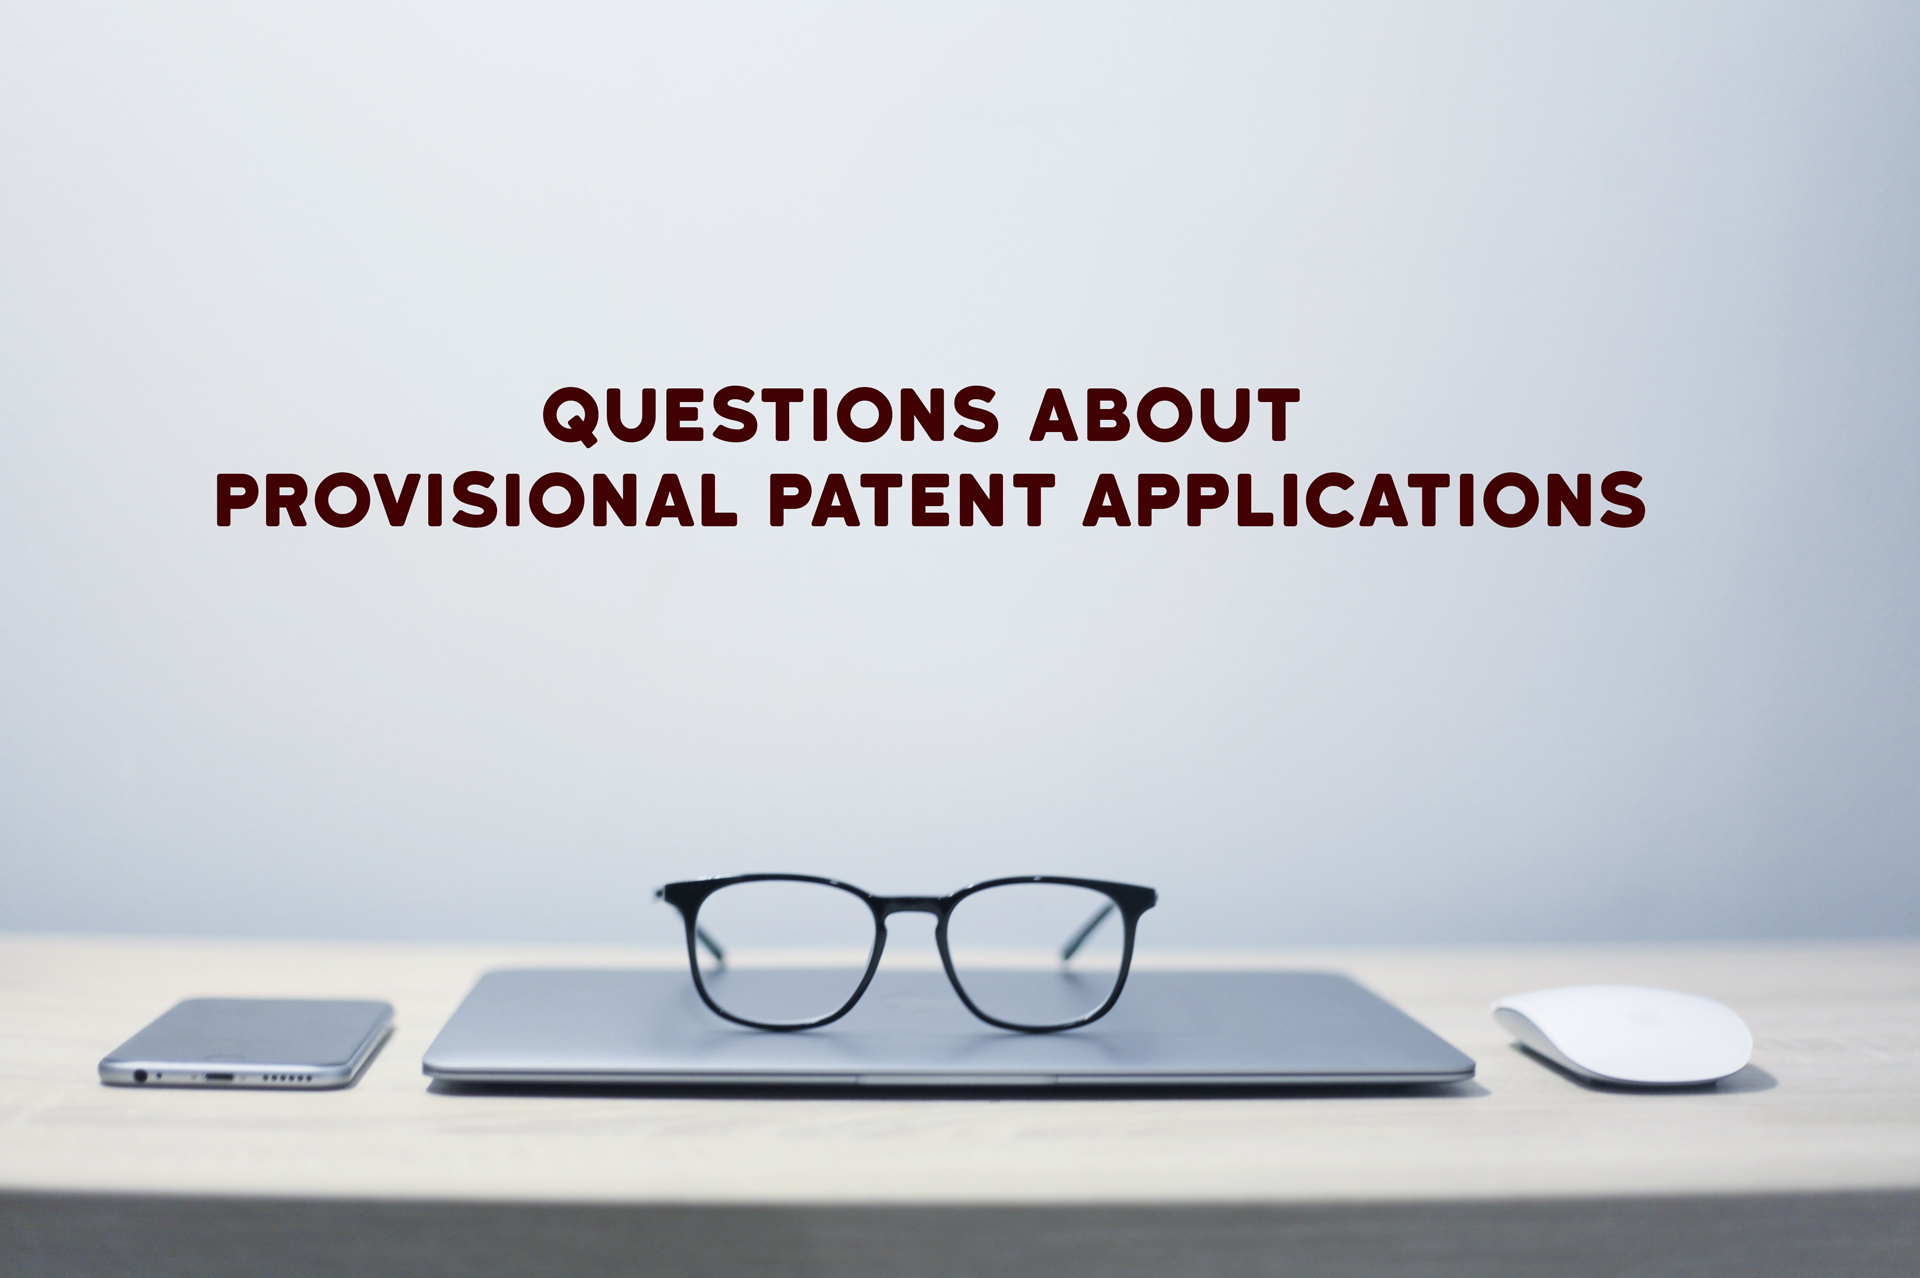 Questions about Provisional Patent Application